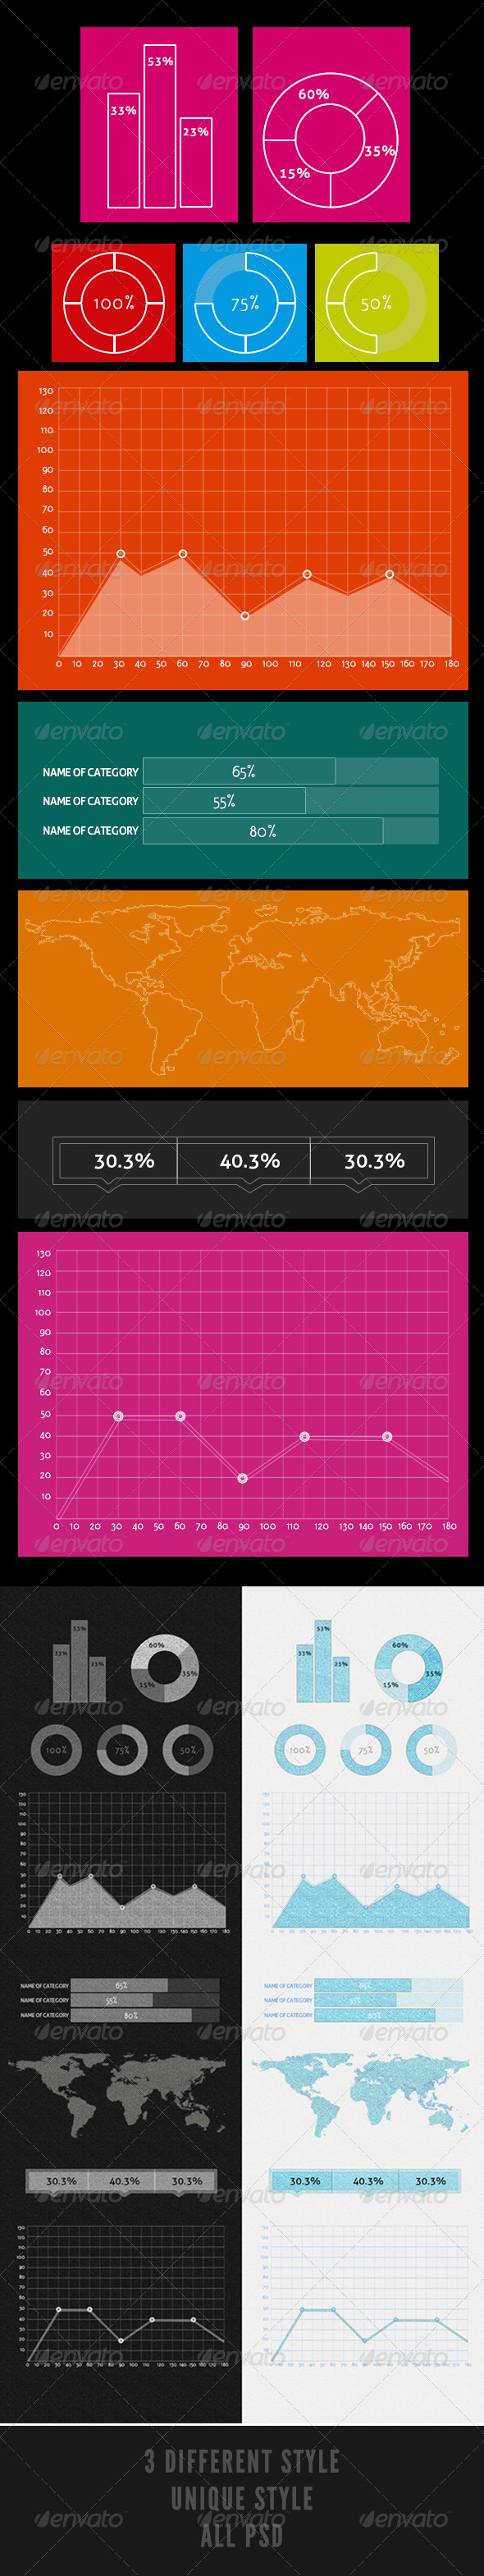 GraphicRiver Pioneer Infographic 4348742